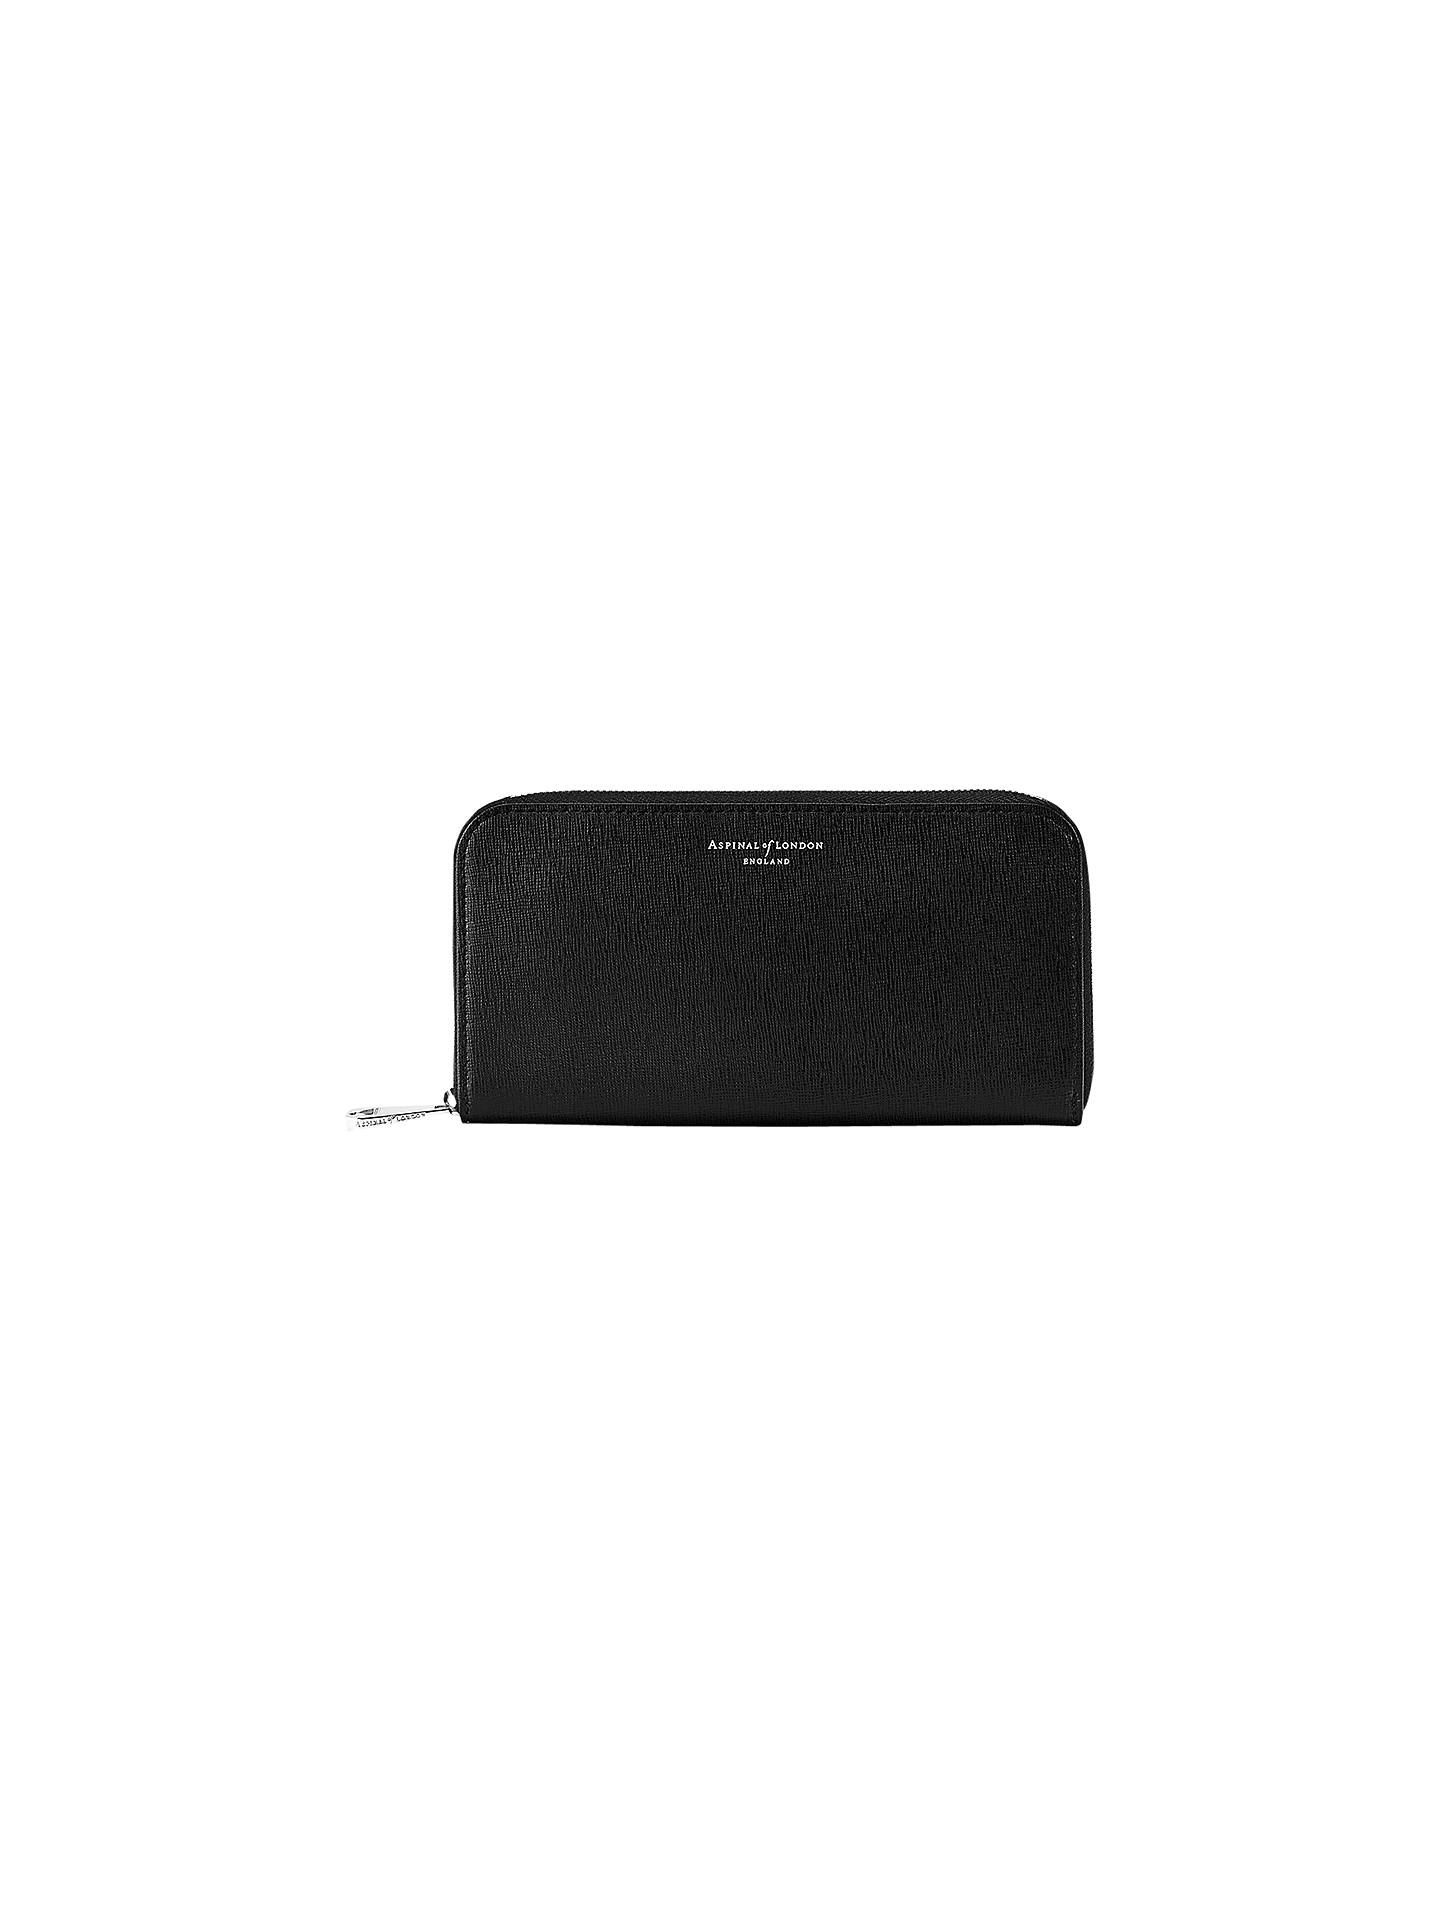 Buy Aspinal of London Leather Continental Clutch Purse, Black Online at johnlewis.com